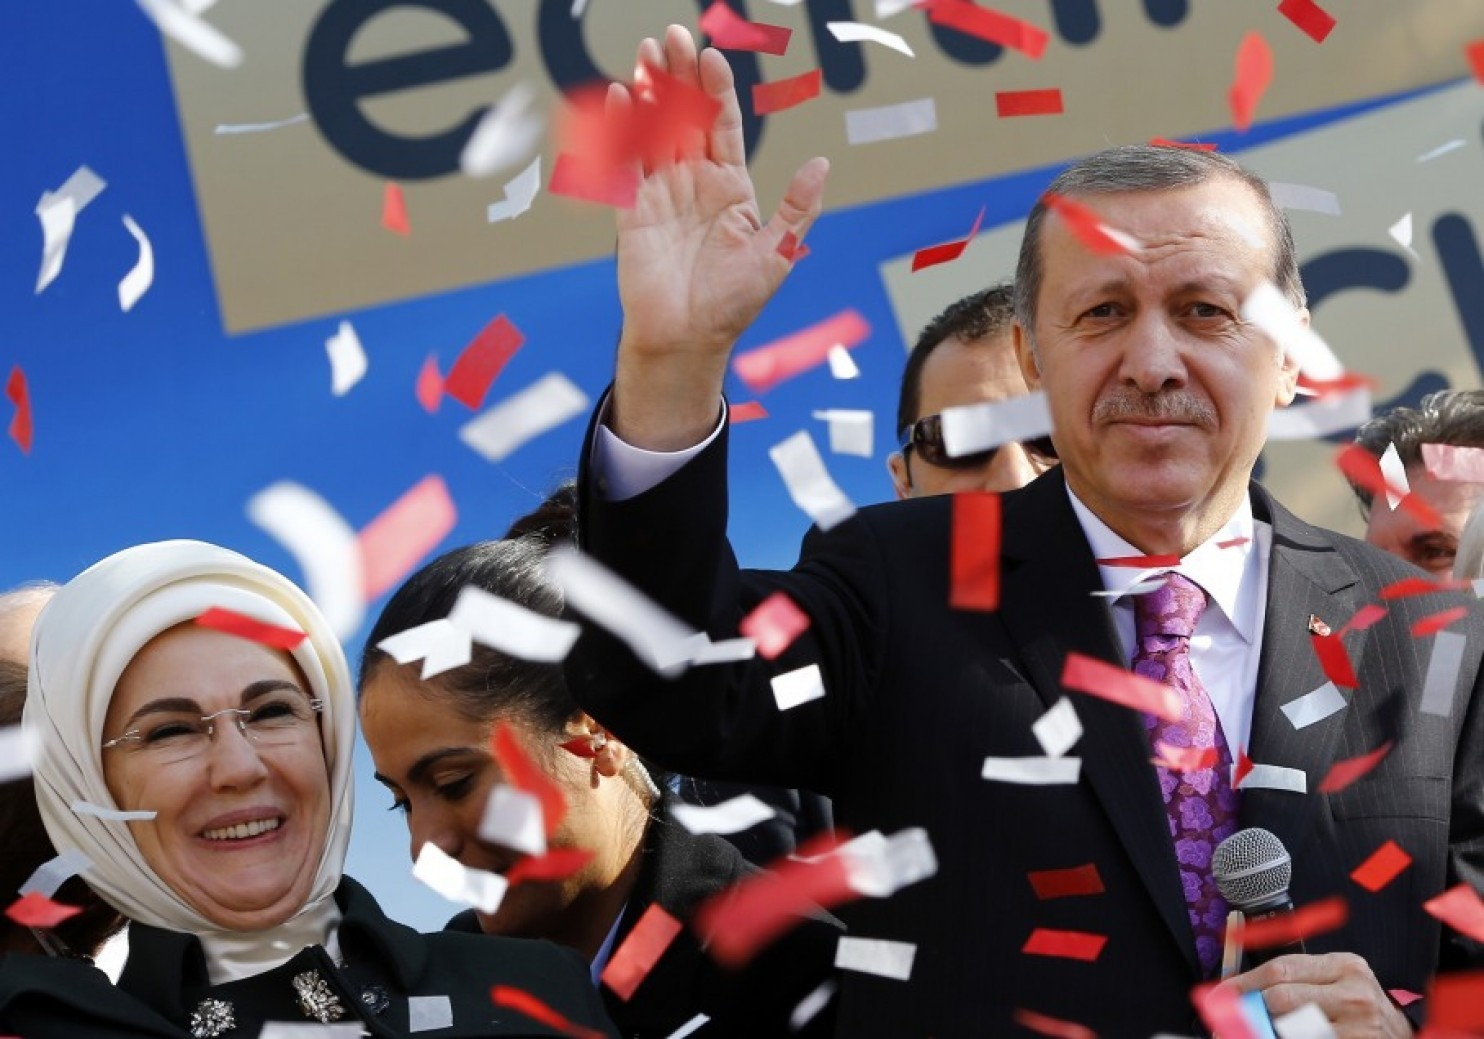 Turkish President Erdogan is attempting to exert more influence over Latin American Islam with efforts in Cuba and across the hemisphere.